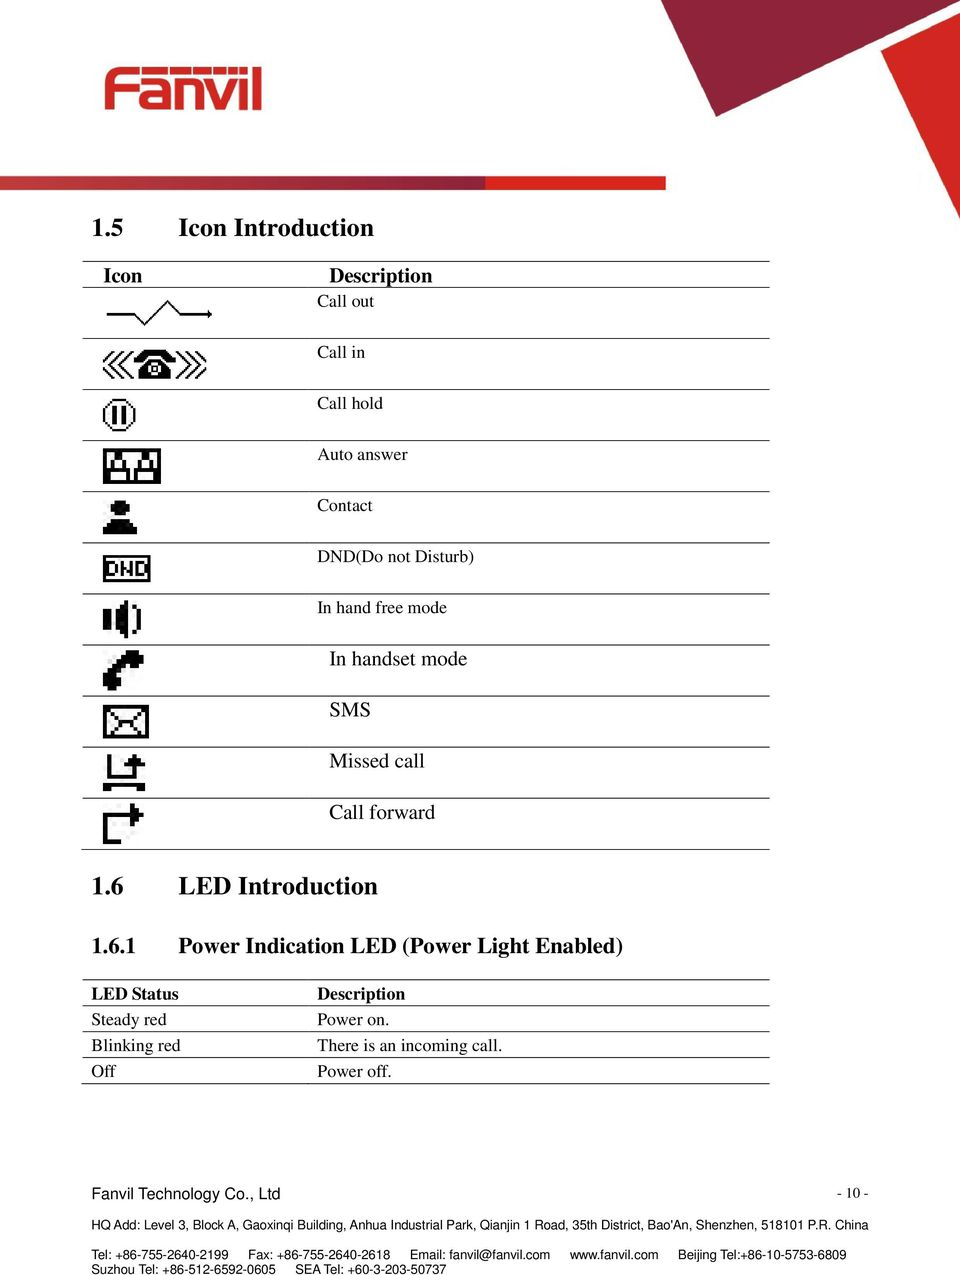 6 LED Introduction 1.6.1 Power Indication LED (Power Light Enabled) LED Status Steady